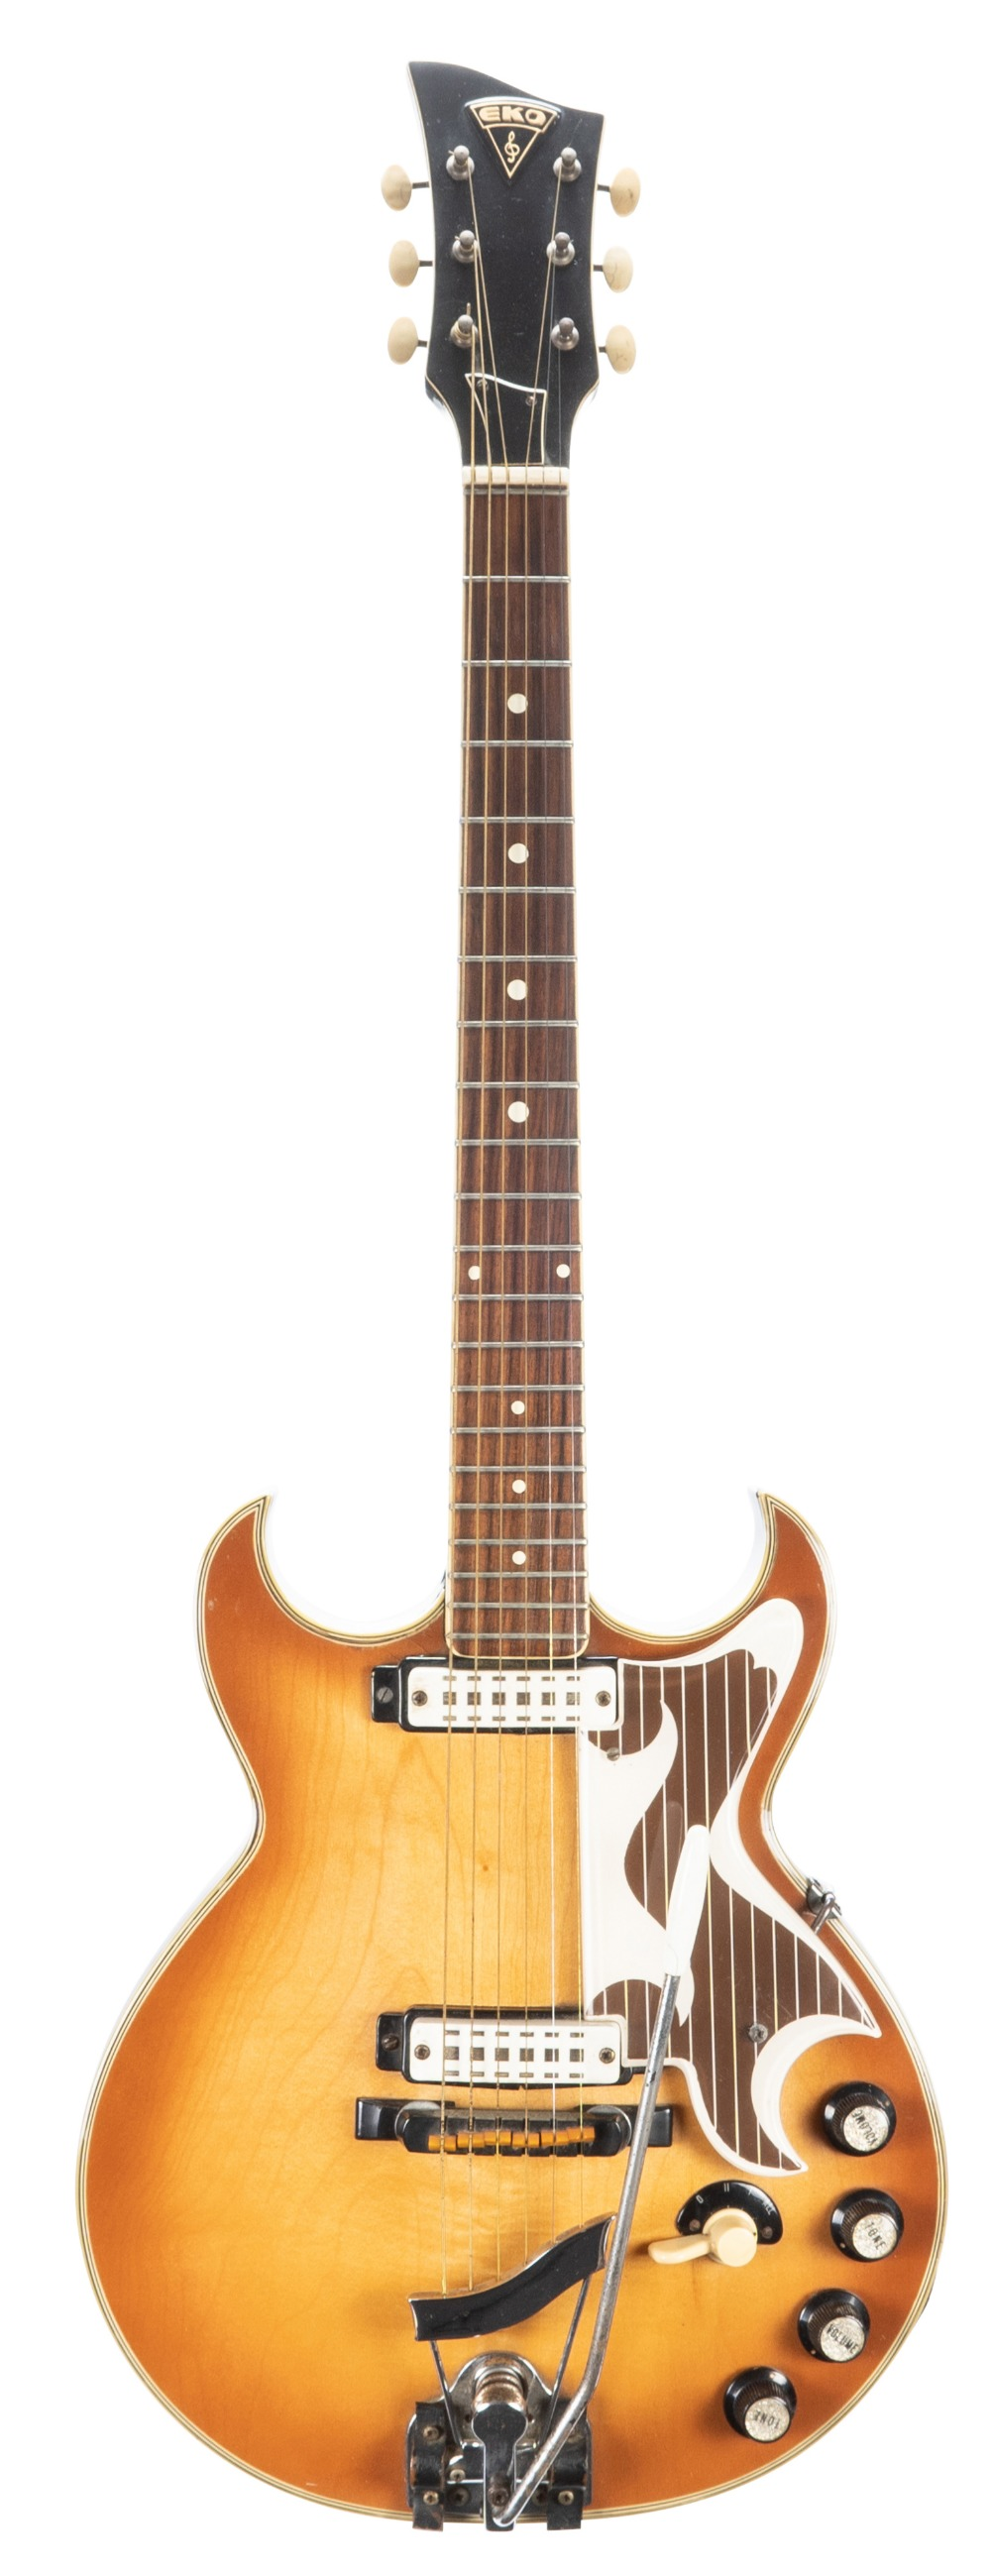 Lot 36 - 1960s Eko 360/2 Florentine electric guitar, made in Italy; Finish: amber burst, lacquer cracks,